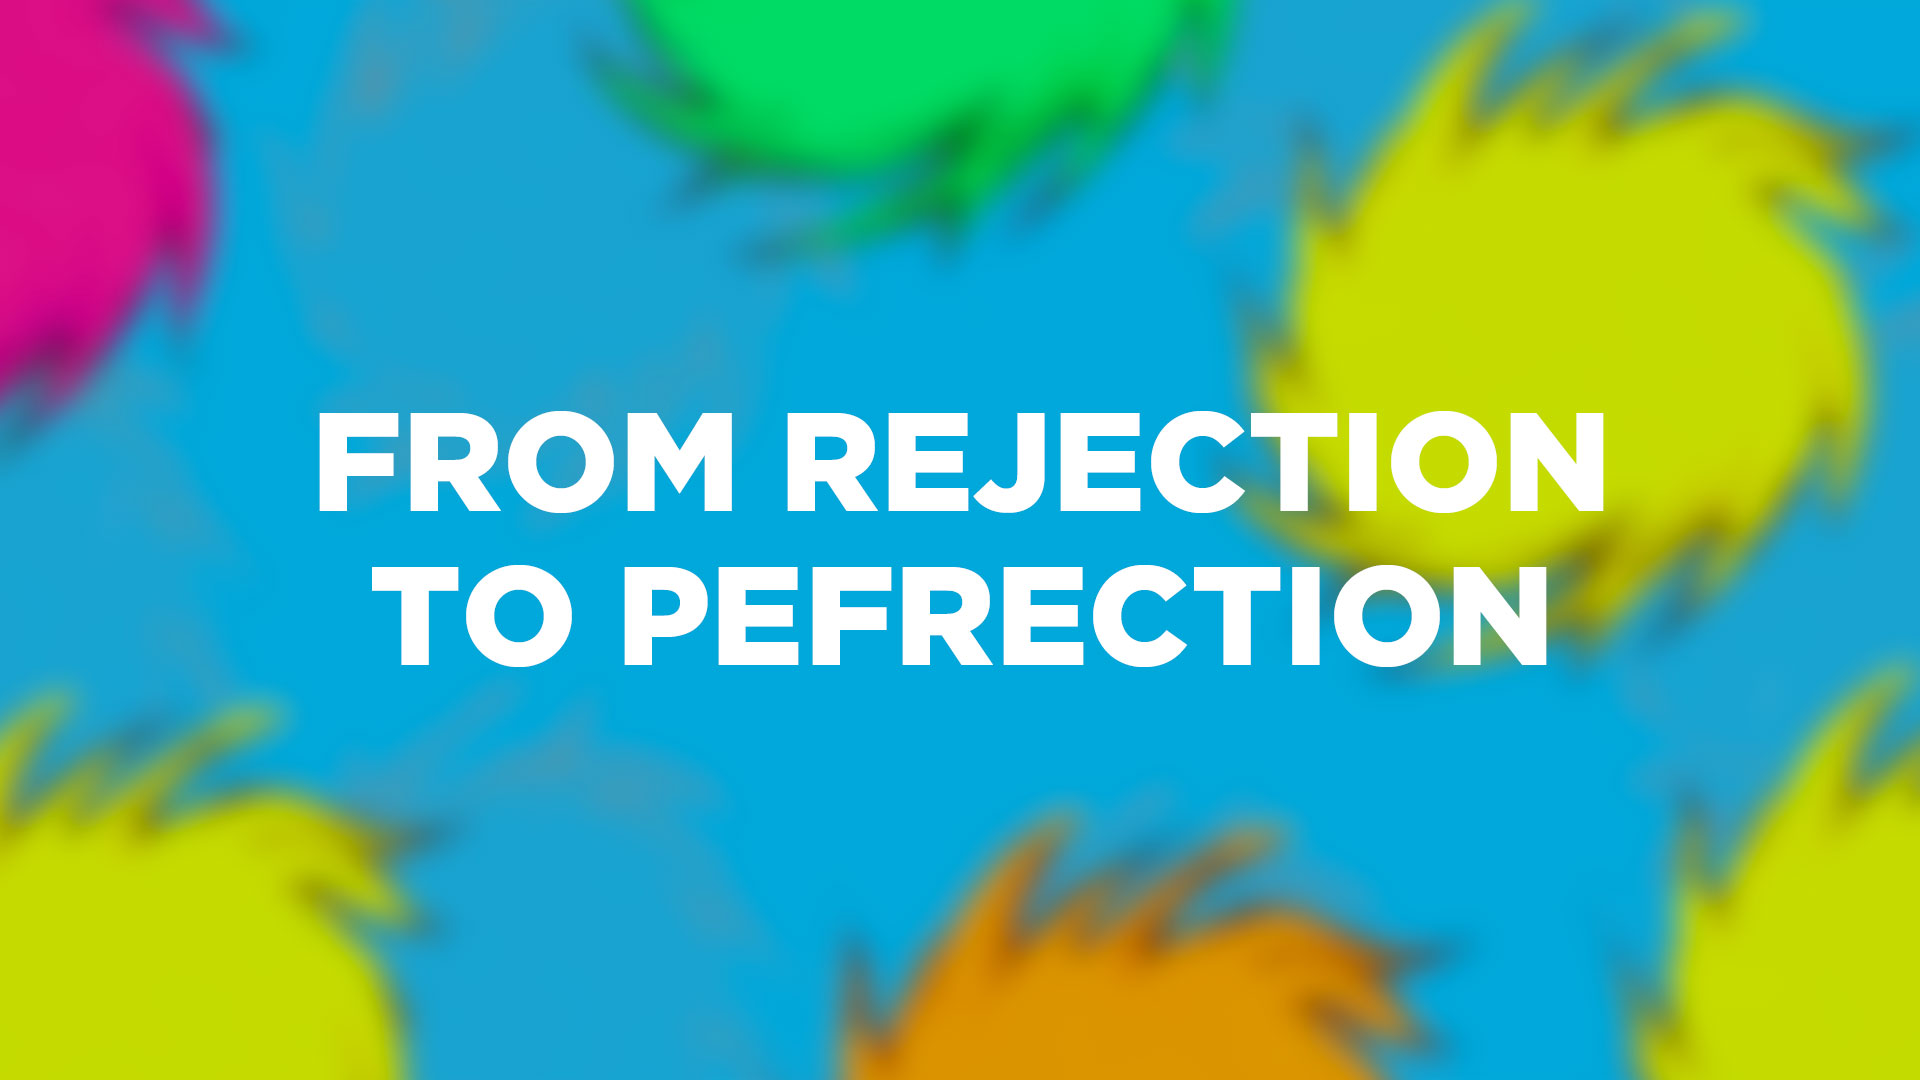 From Rejection To Perfection